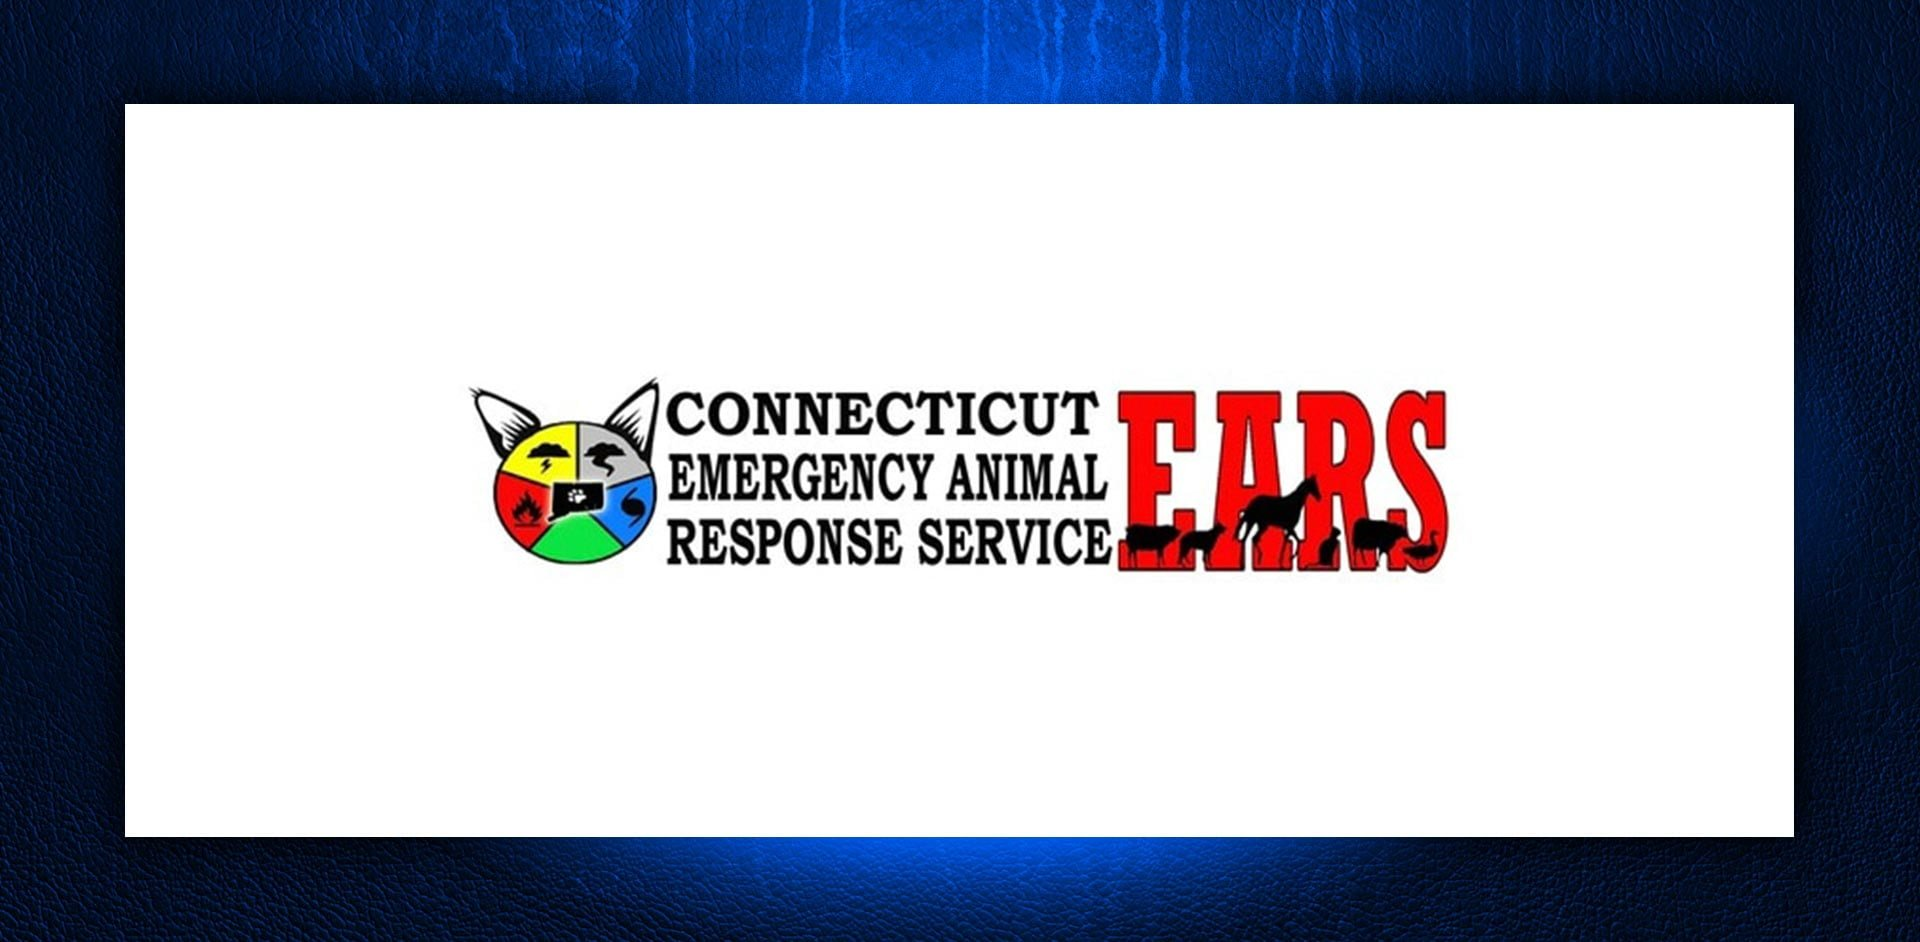 The Connecticut Emergency Animal Response Service